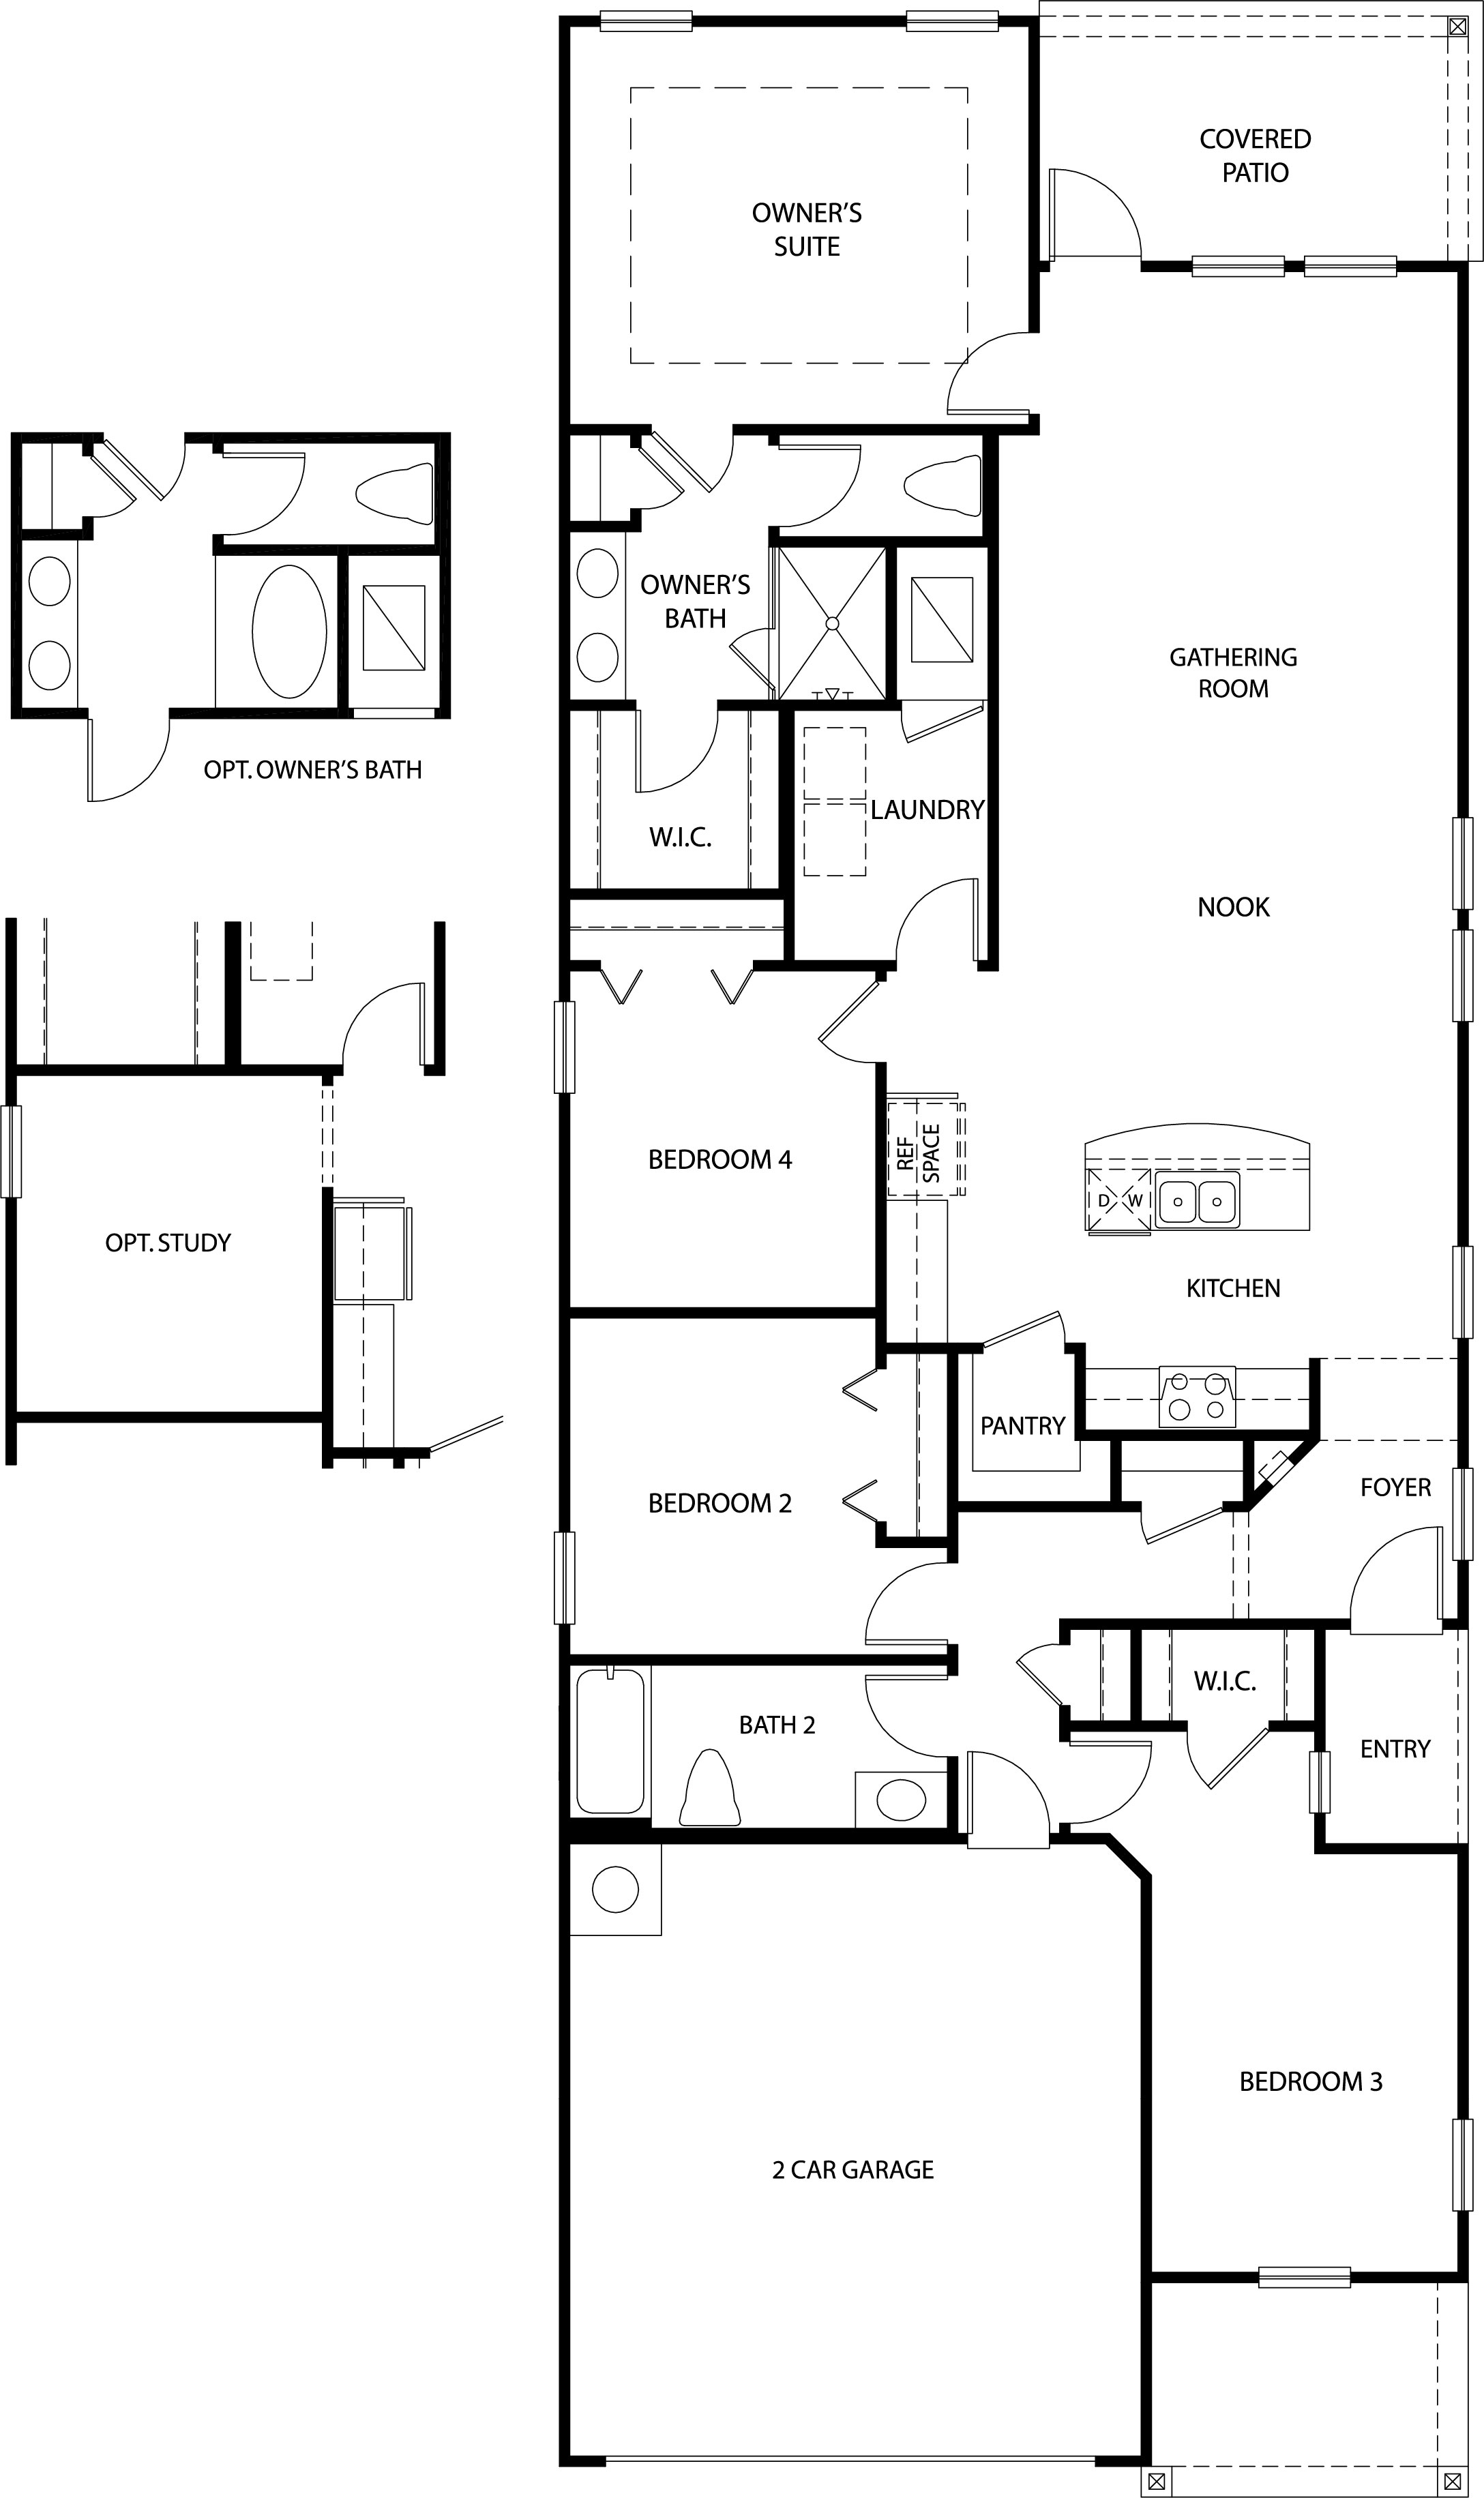 D.R. Horton Renderings & Floorplans